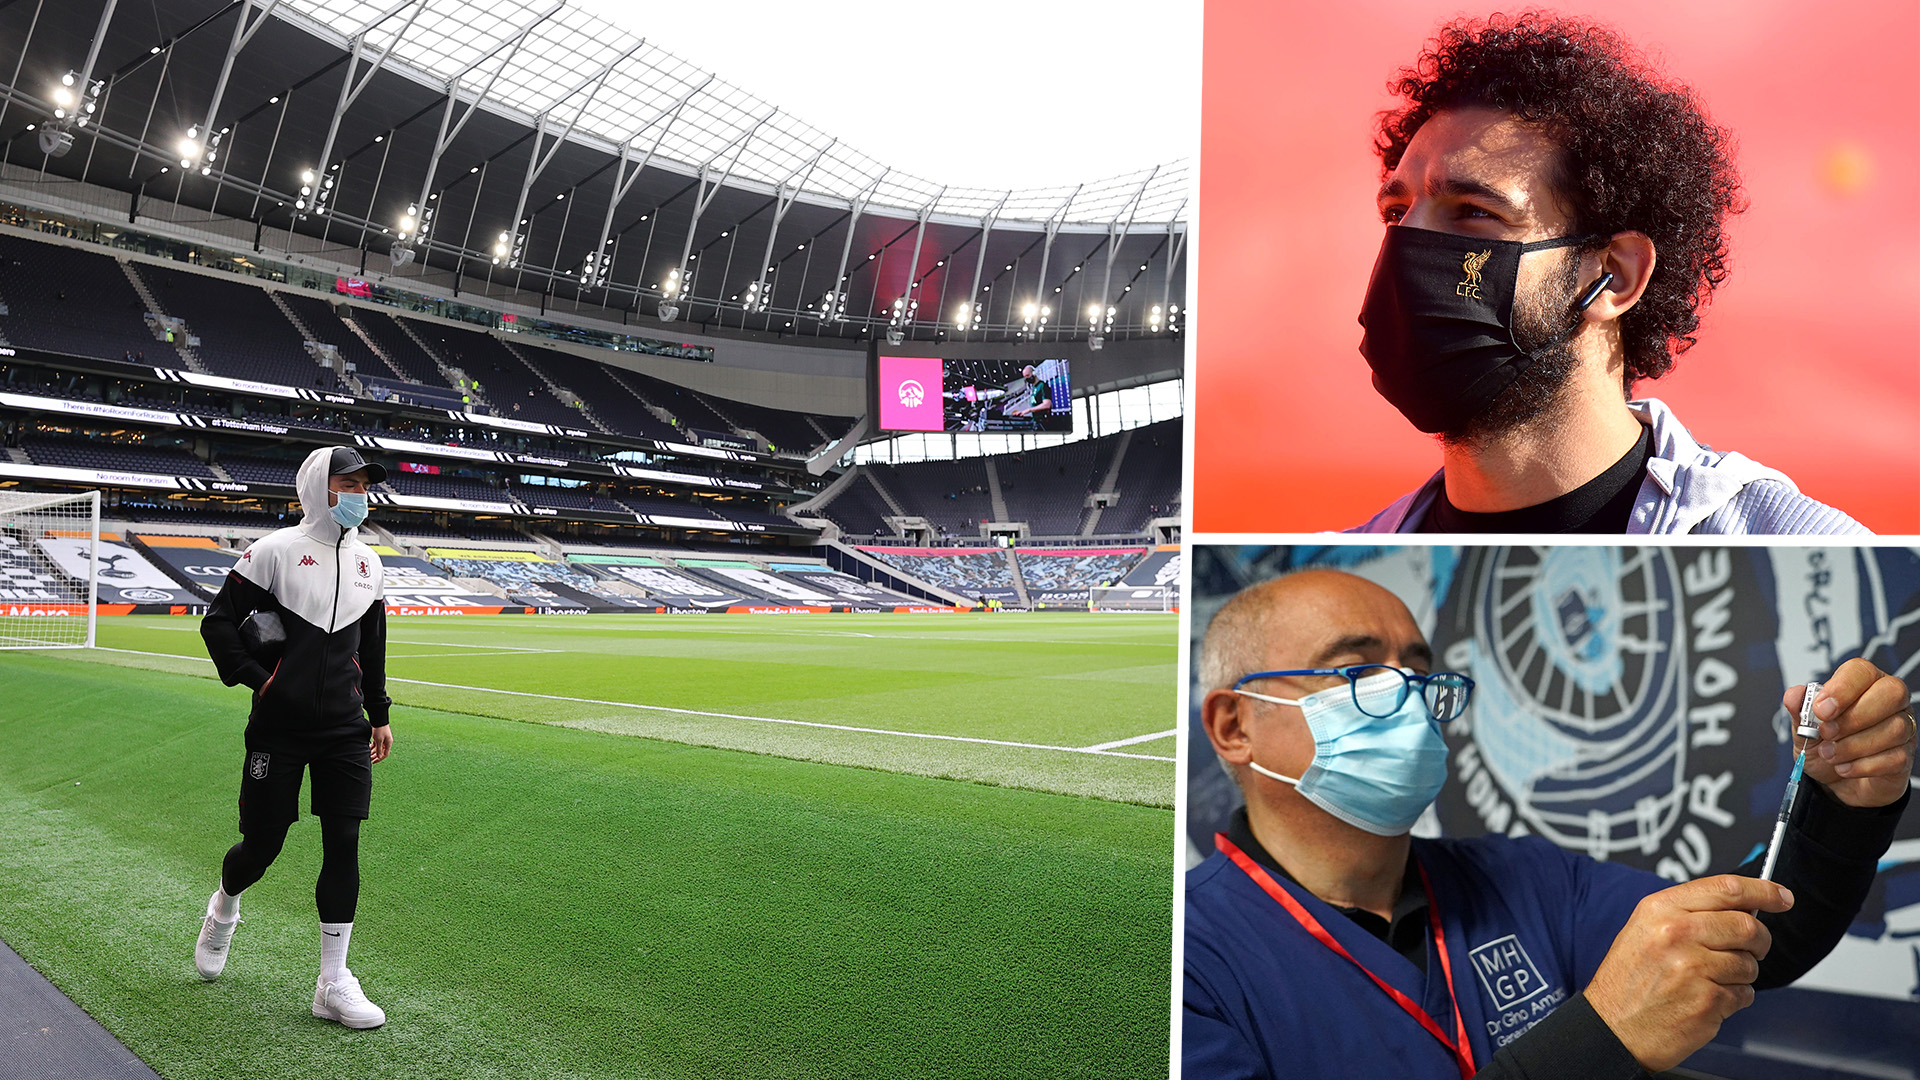 Premier League footballers will need to have Covid-19 vaccinations for 2021-22 season